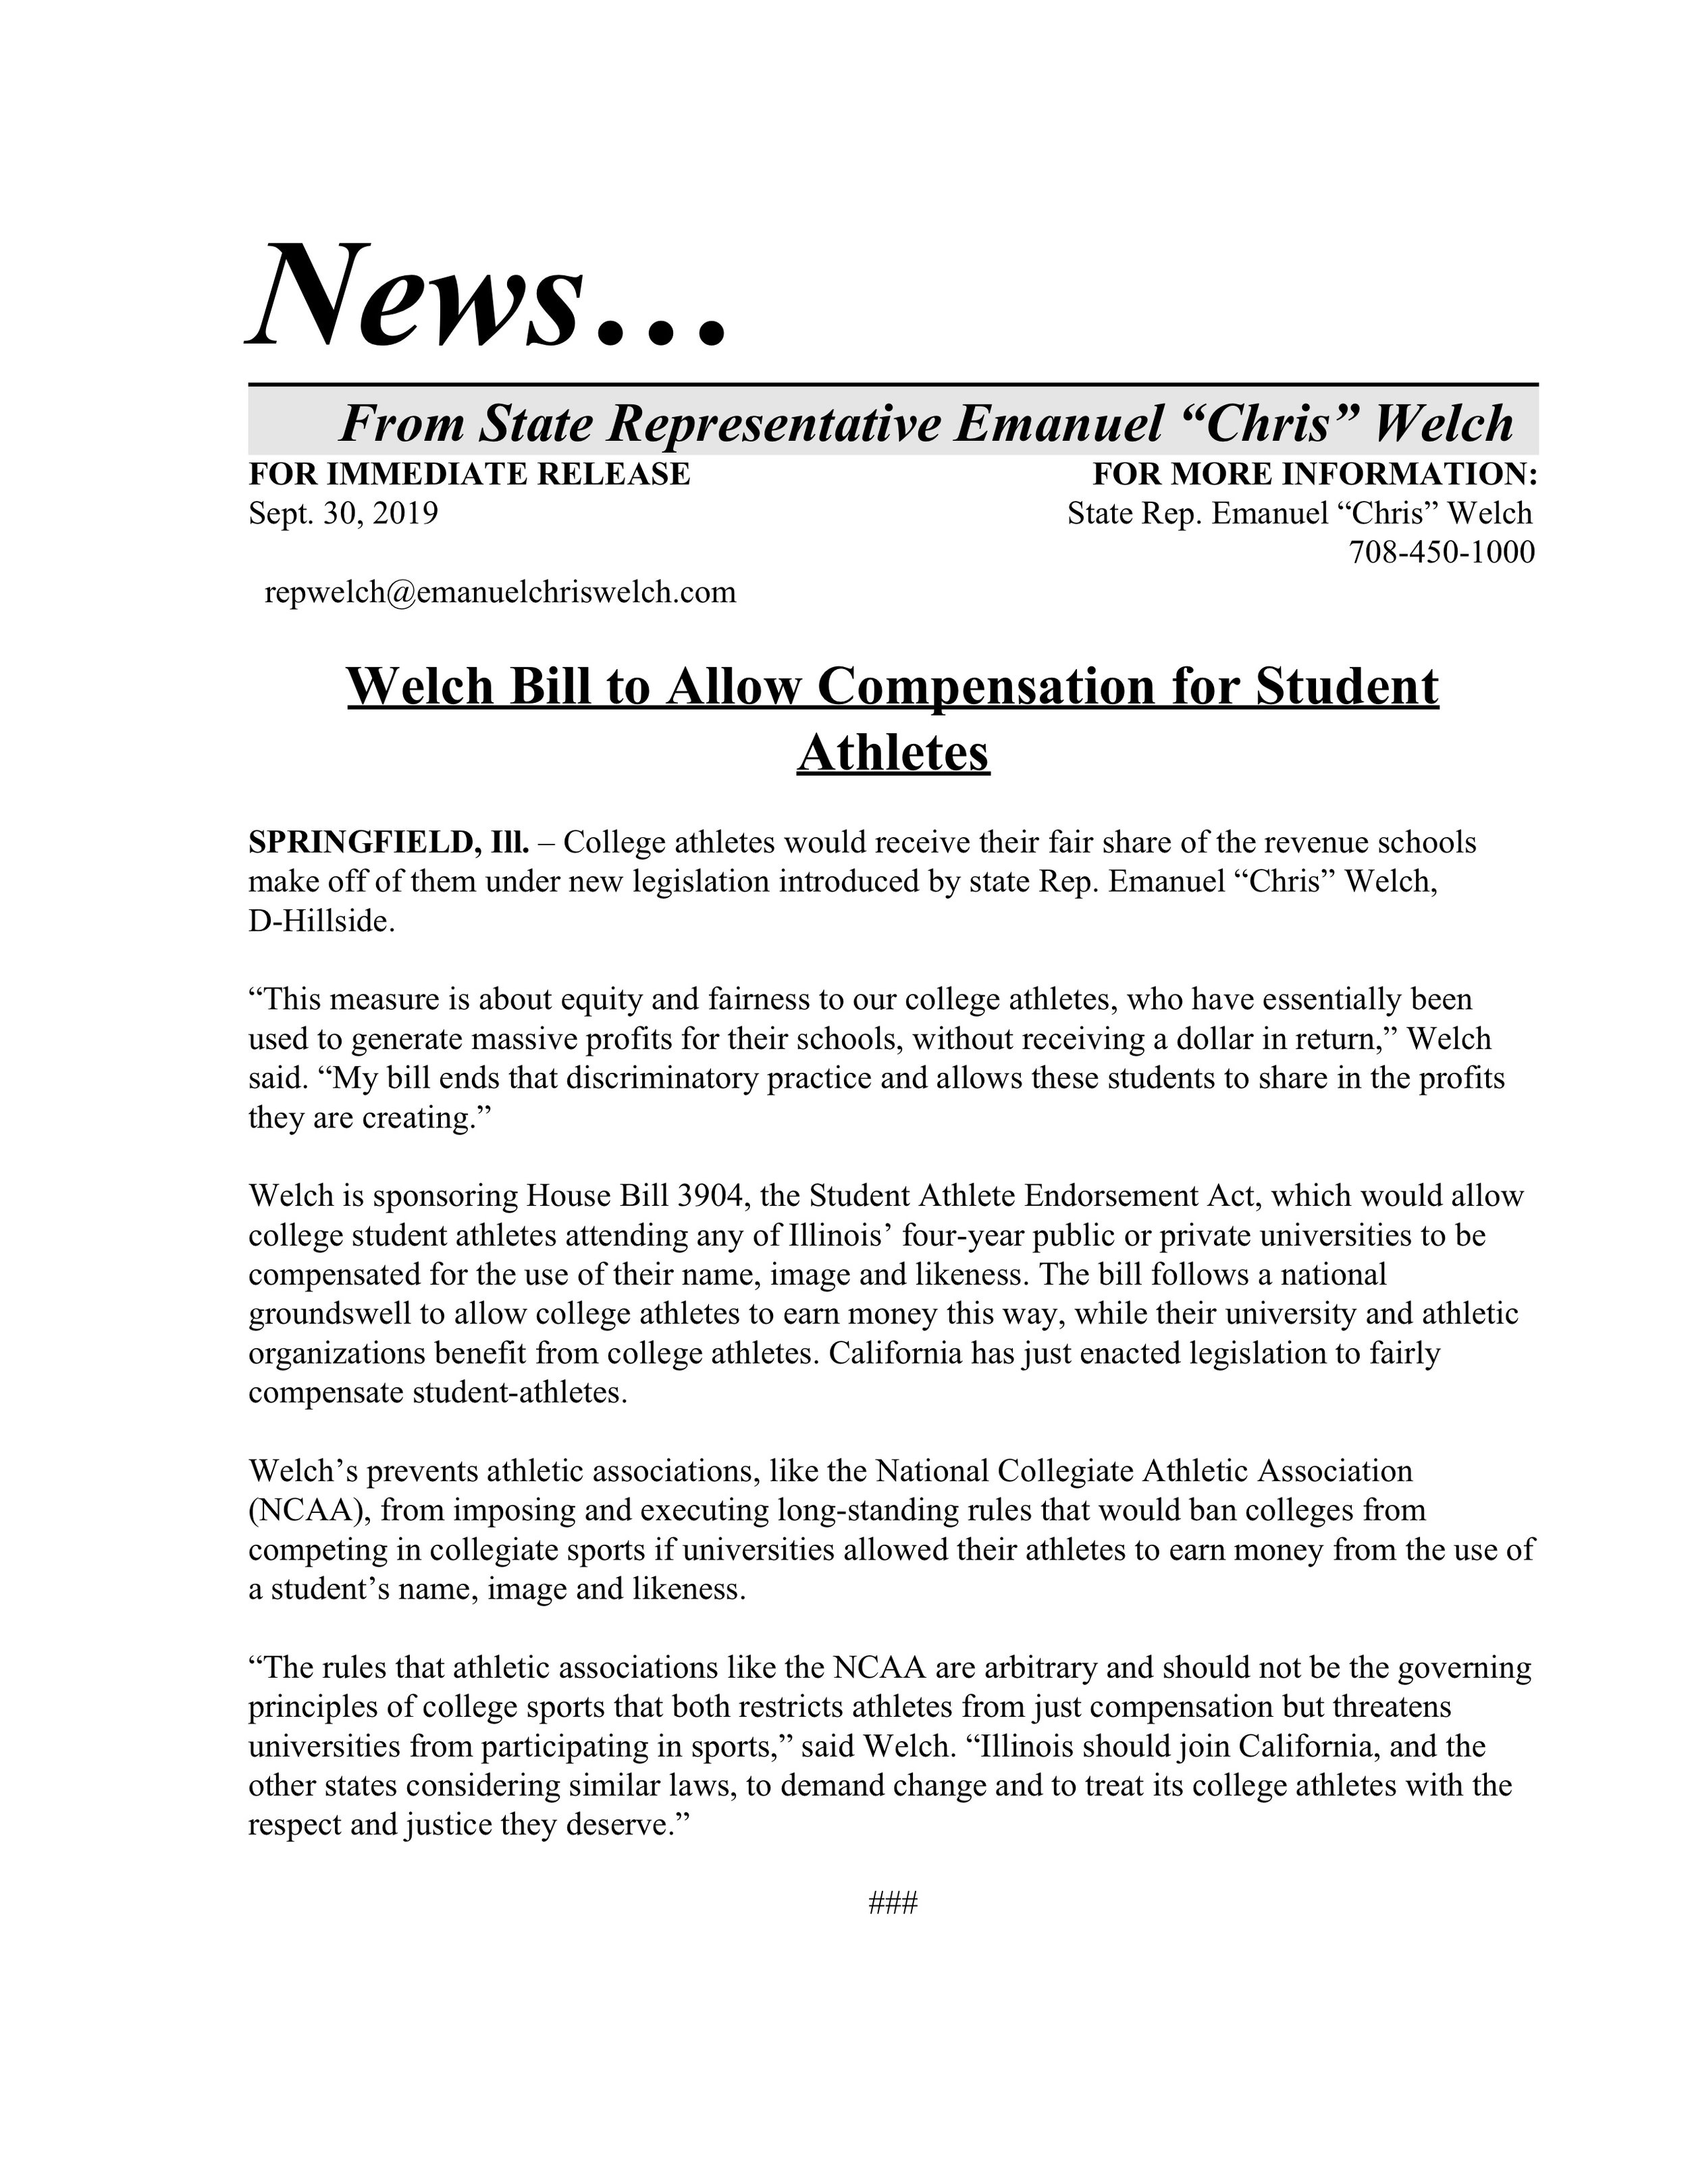 Welch Bill to Allow Compensation for Student Athletes  (September 30, 2019)